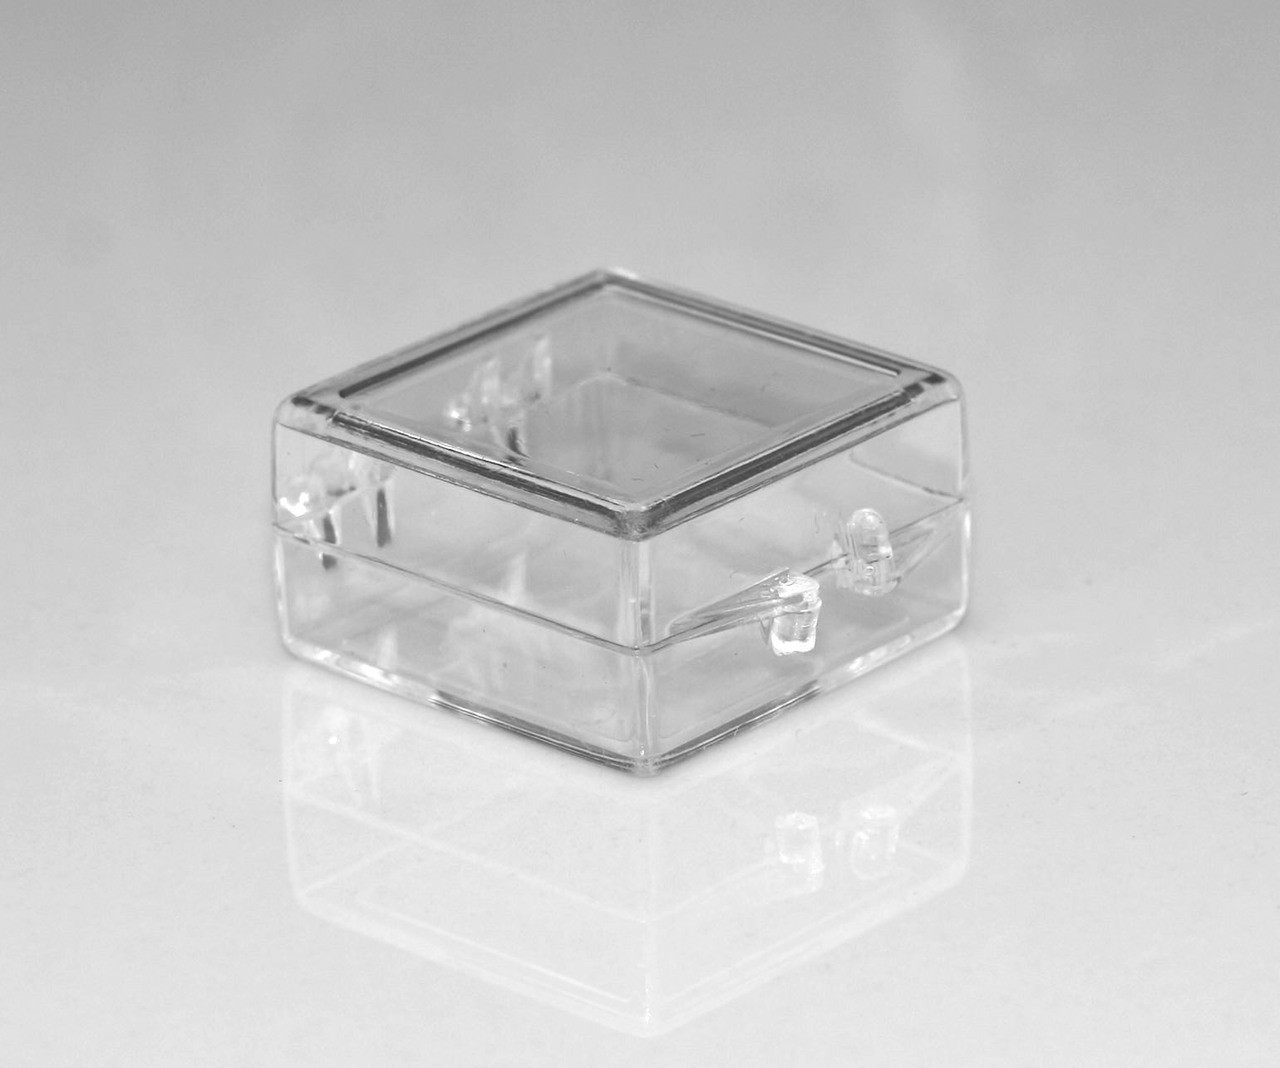 1 X 1 X 1 2 Small Plastic Box With Hinged Lid 110